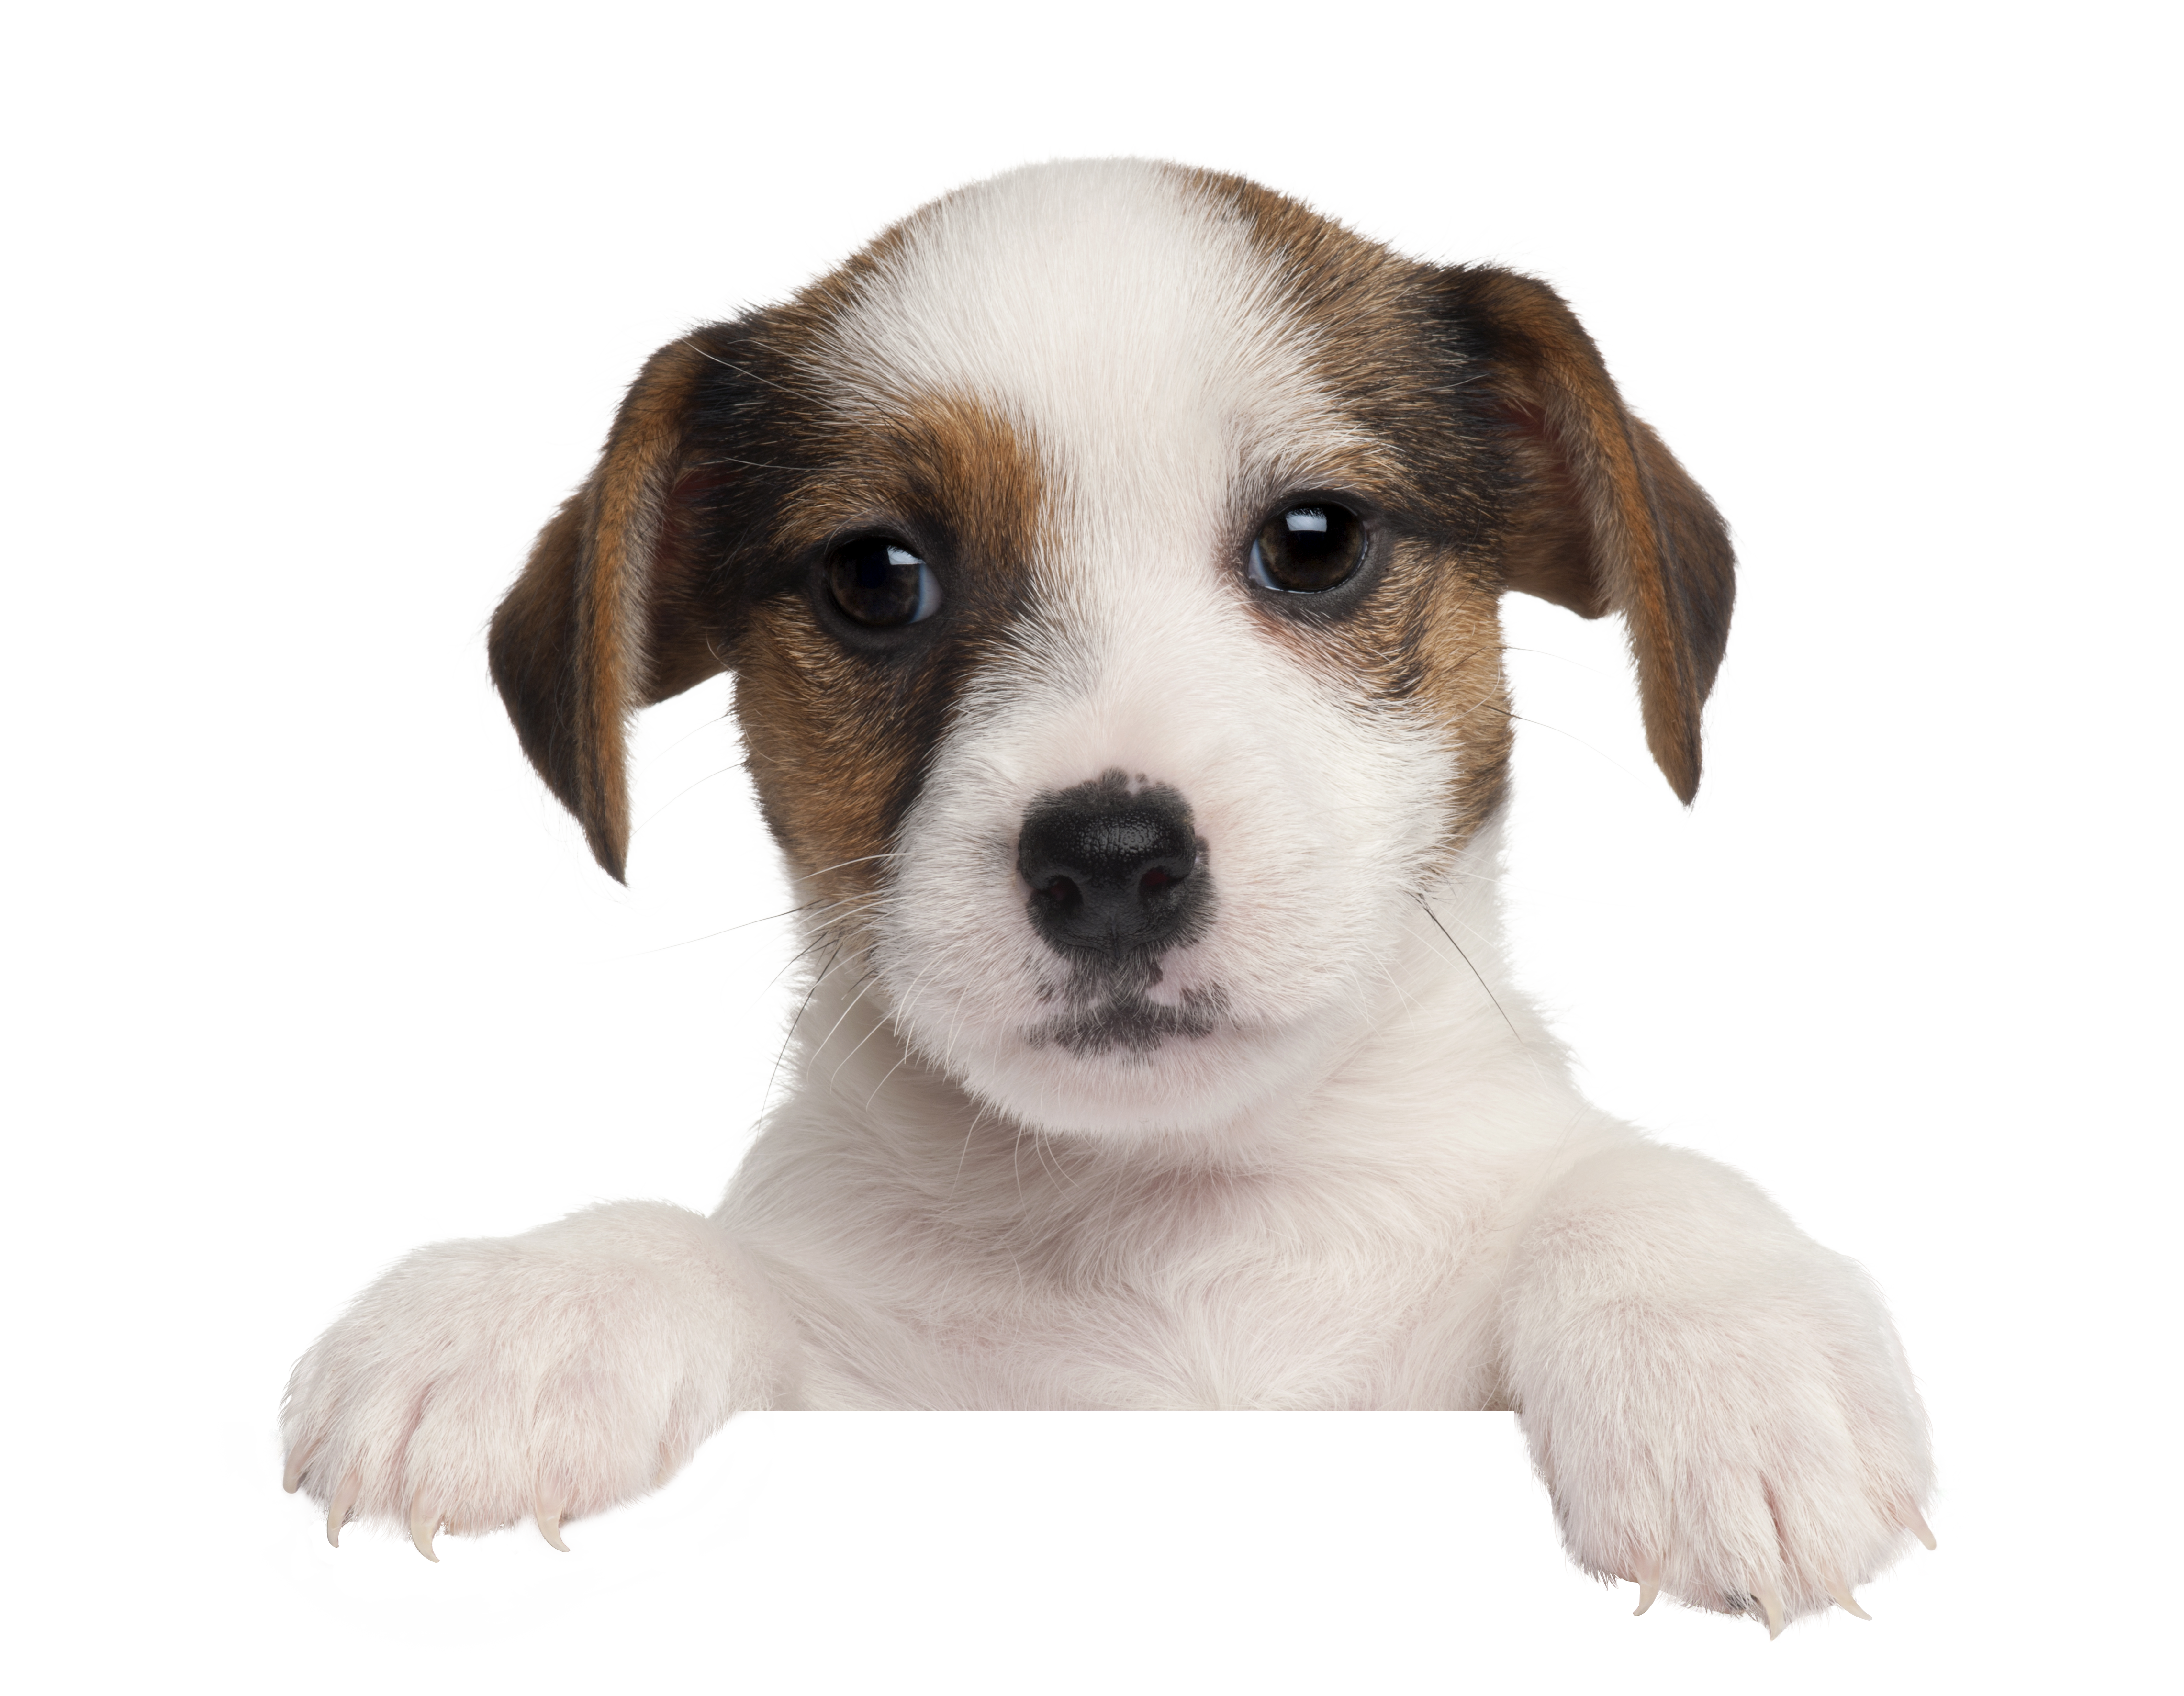 Remove background and prepare high resolution puppy image